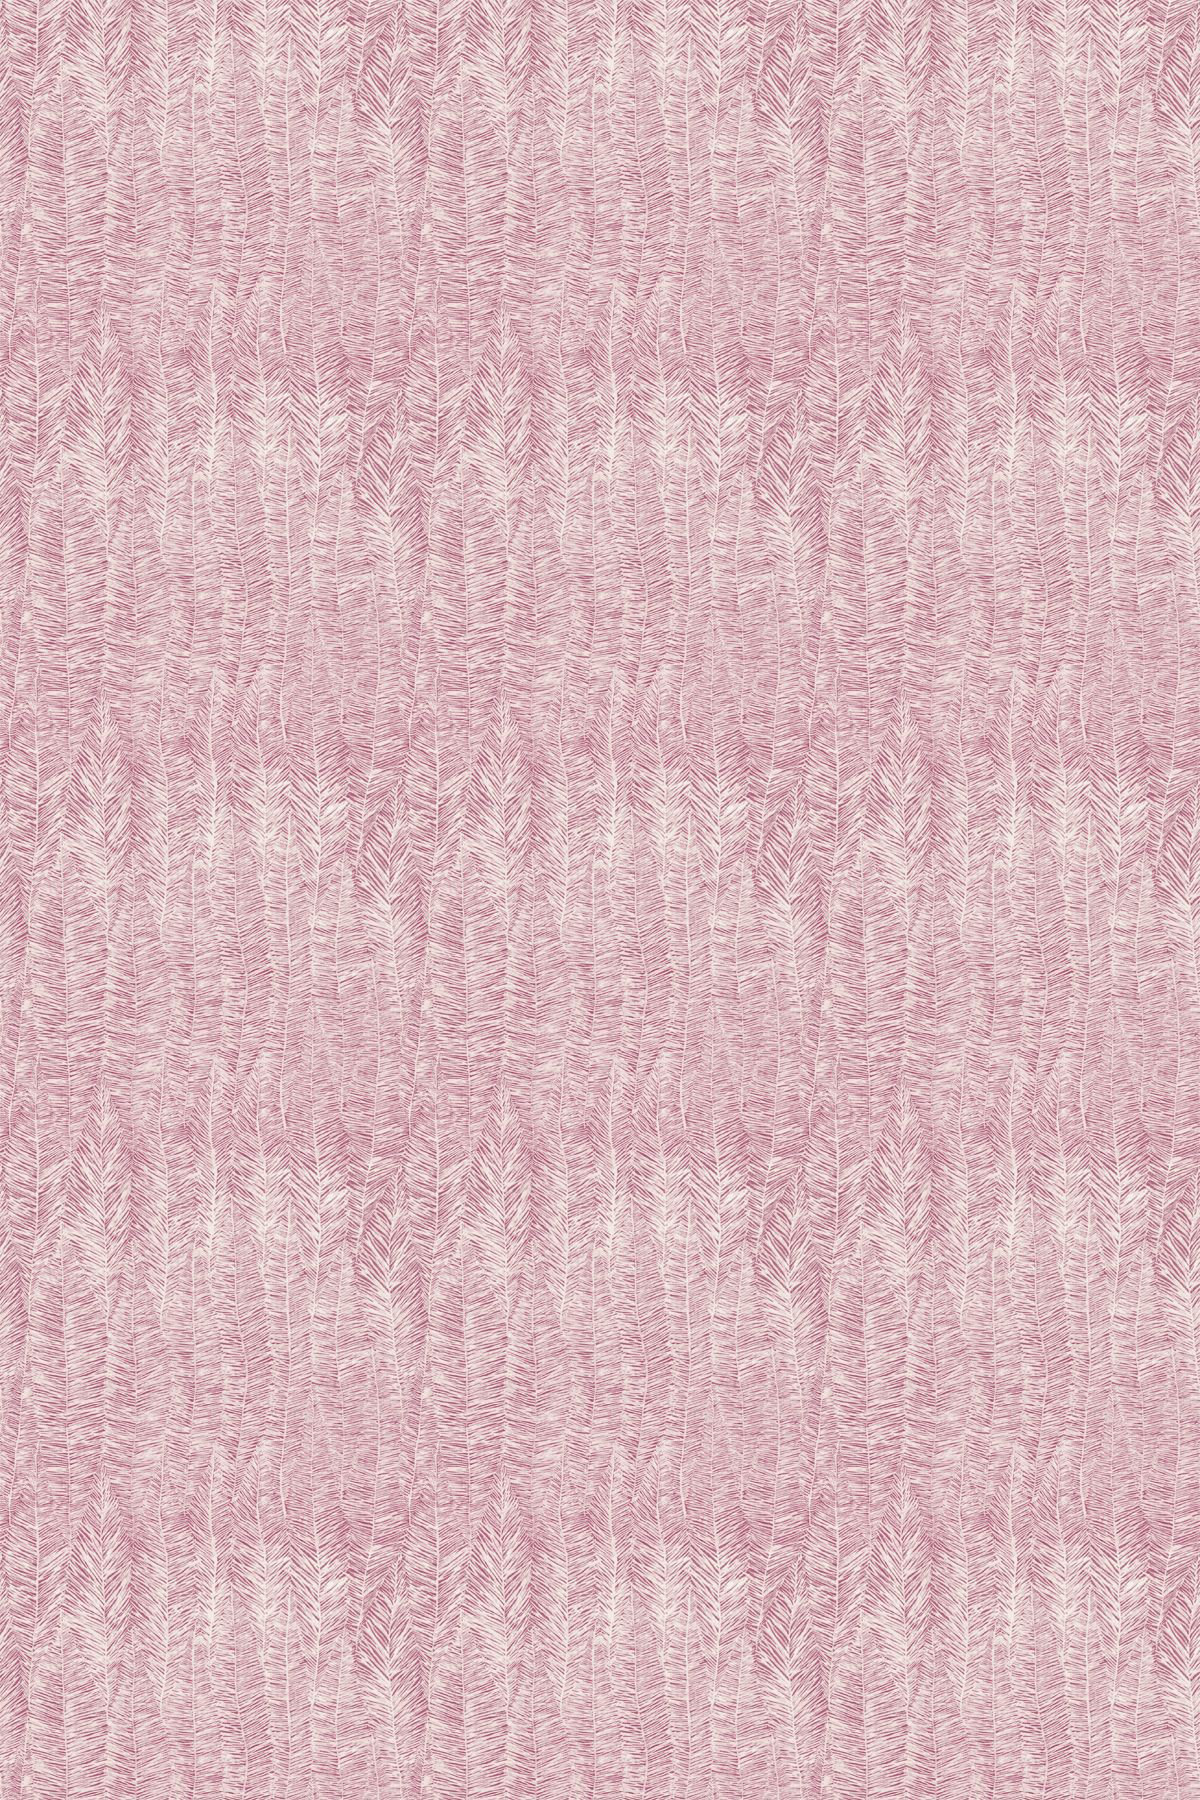 Image of Blendworth Fabric Quill, Quill/003